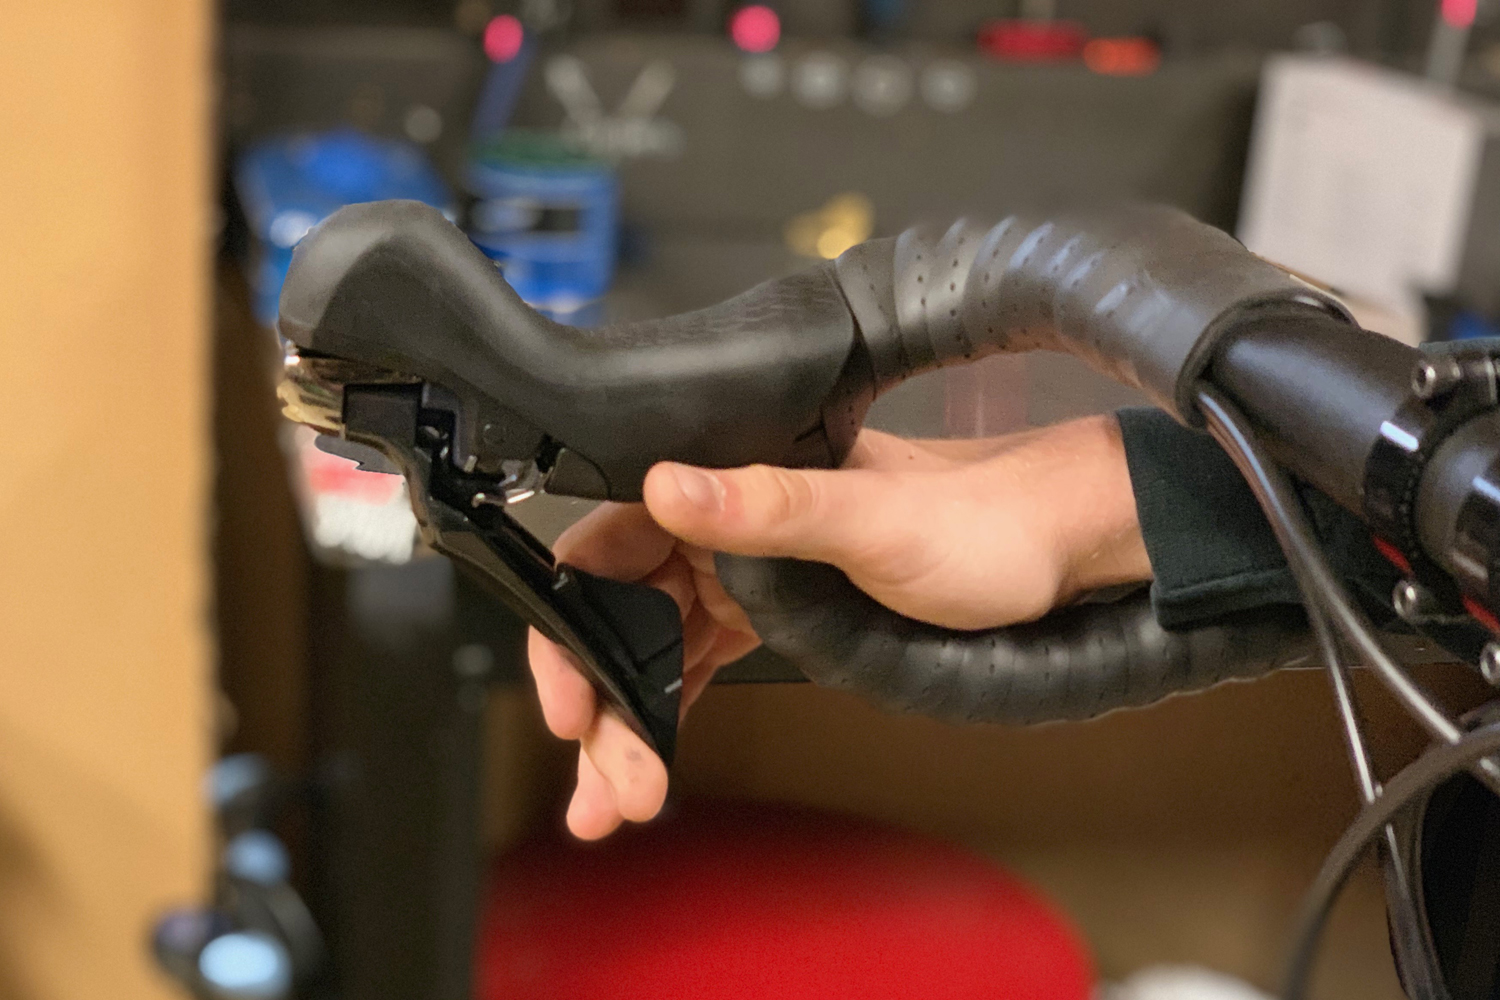 Your brake levers should have enough tension to pull to about one inch from the handle bars.